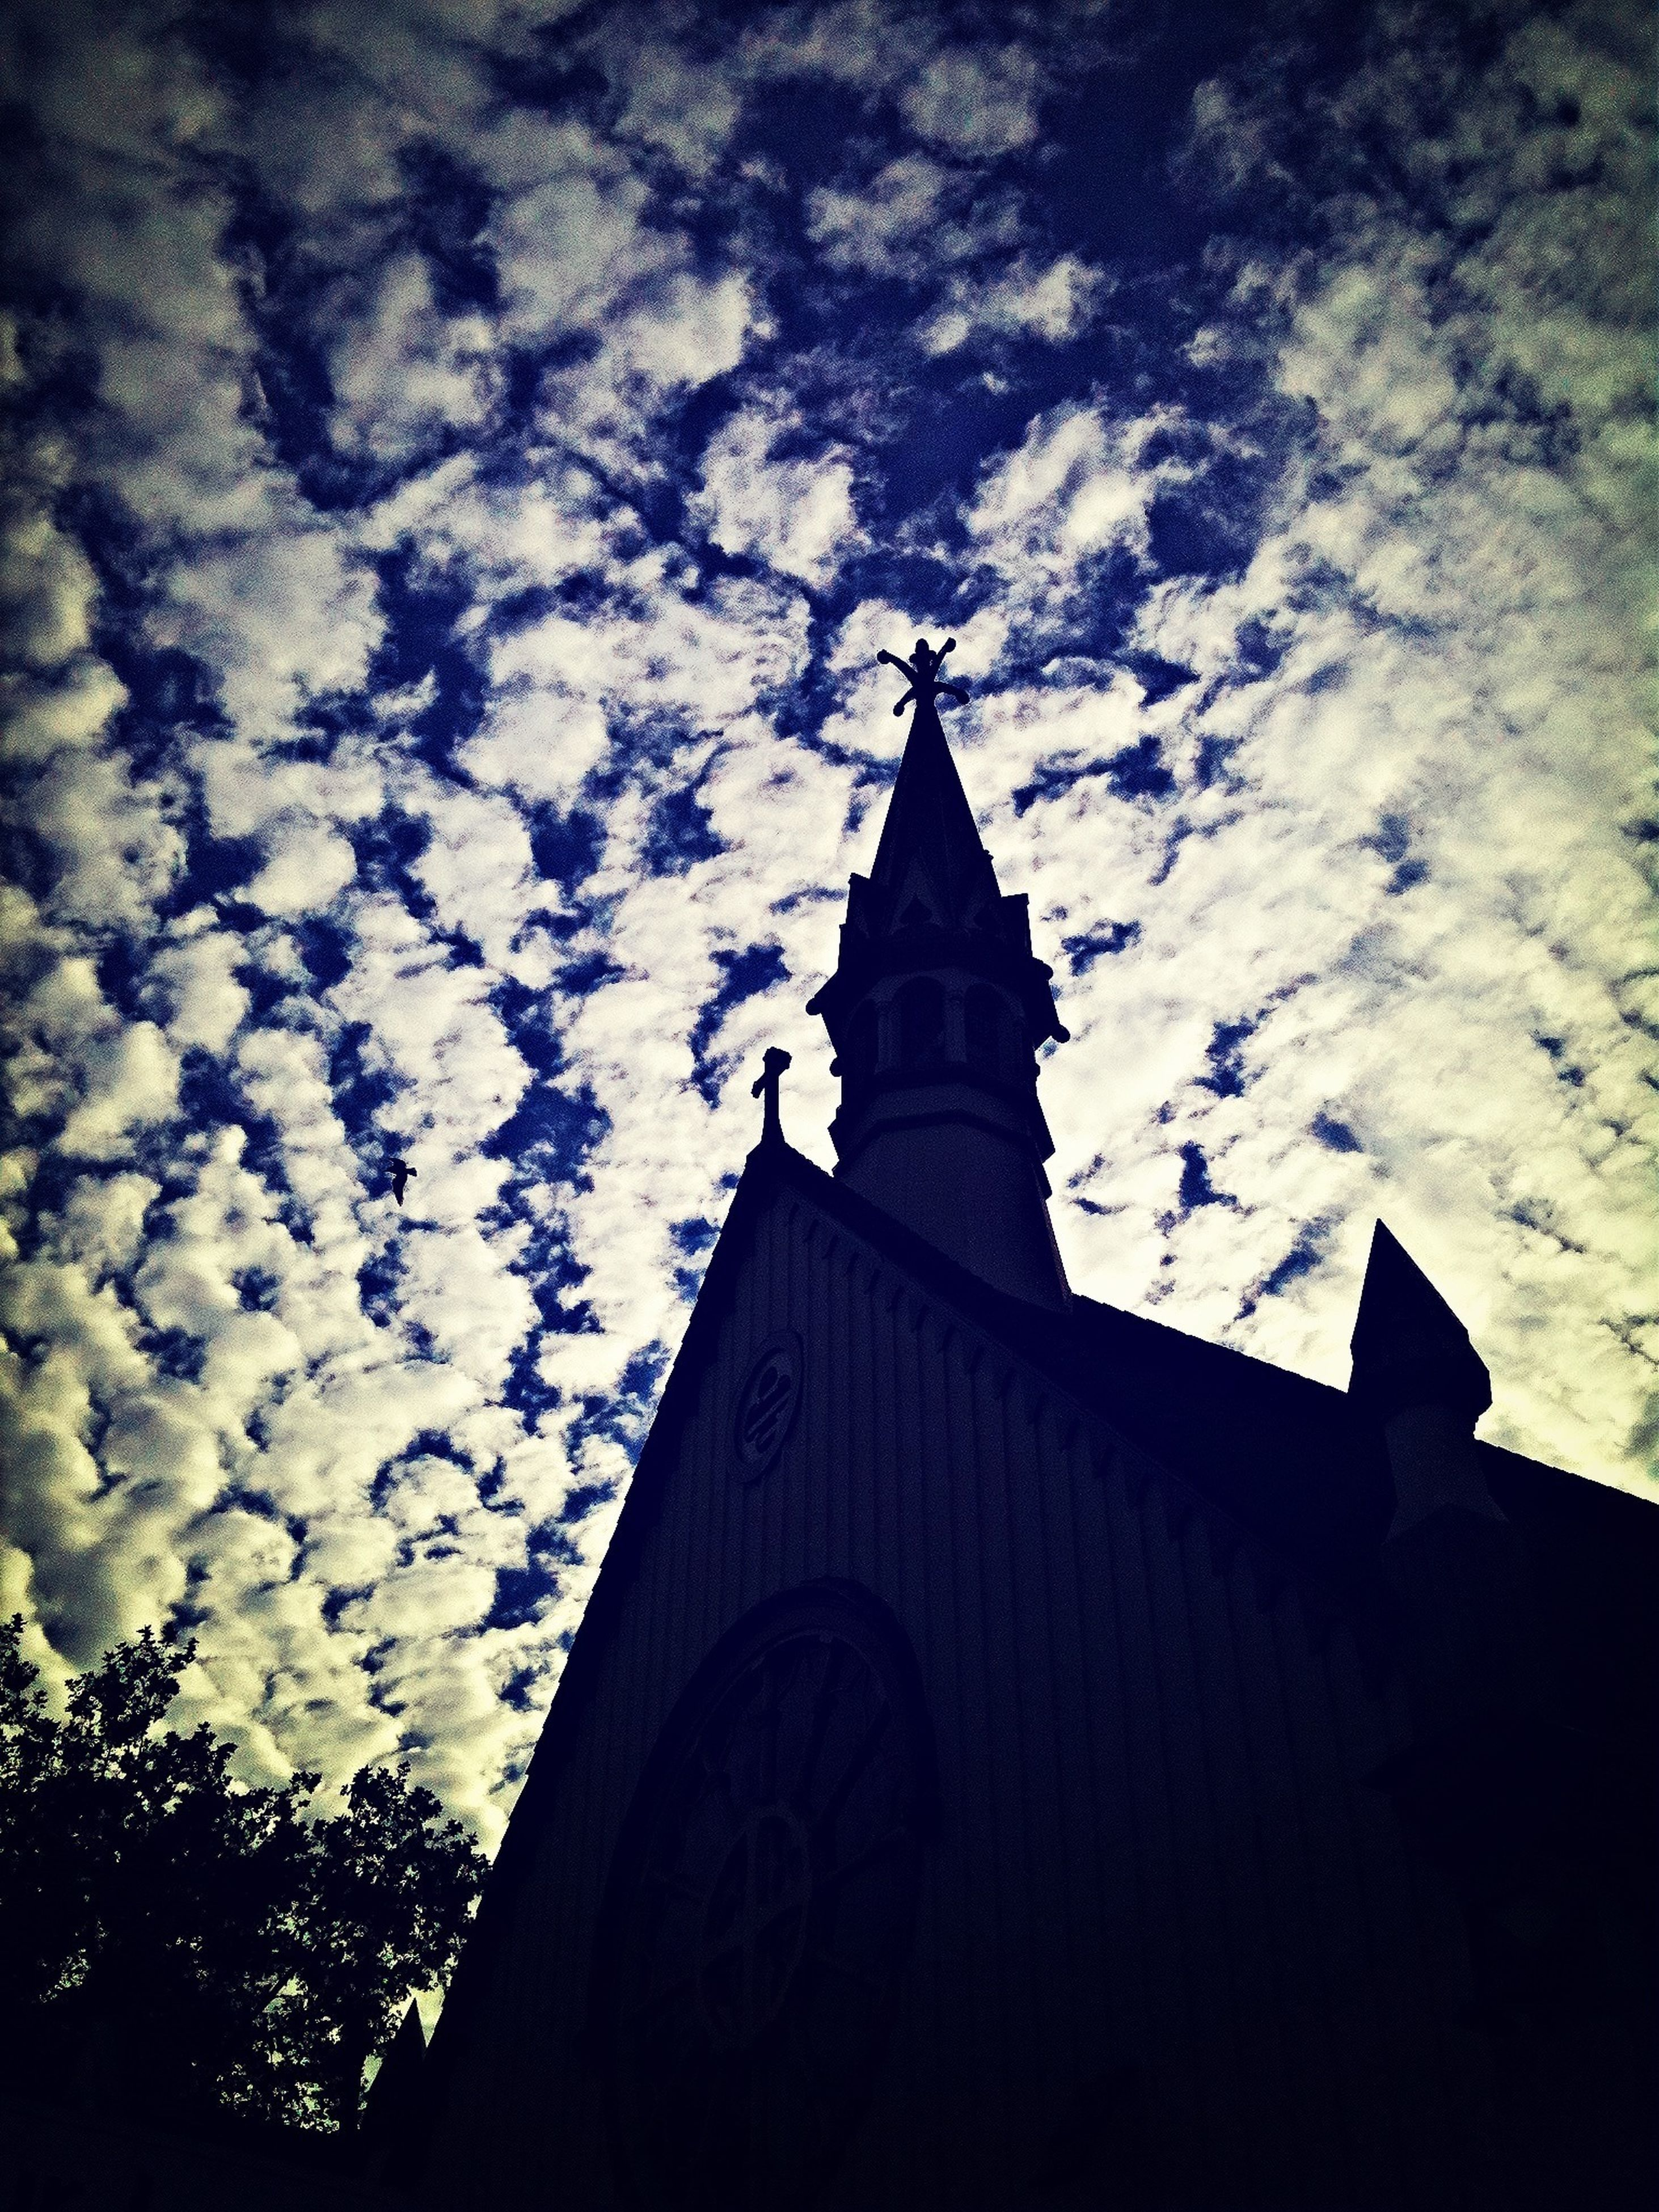 architecture, building exterior, religion, church, place of worship, built structure, spirituality, low angle view, sky, cross, cathedral, silhouette, steeple, cloud - sky, tree, tower, history, outdoors